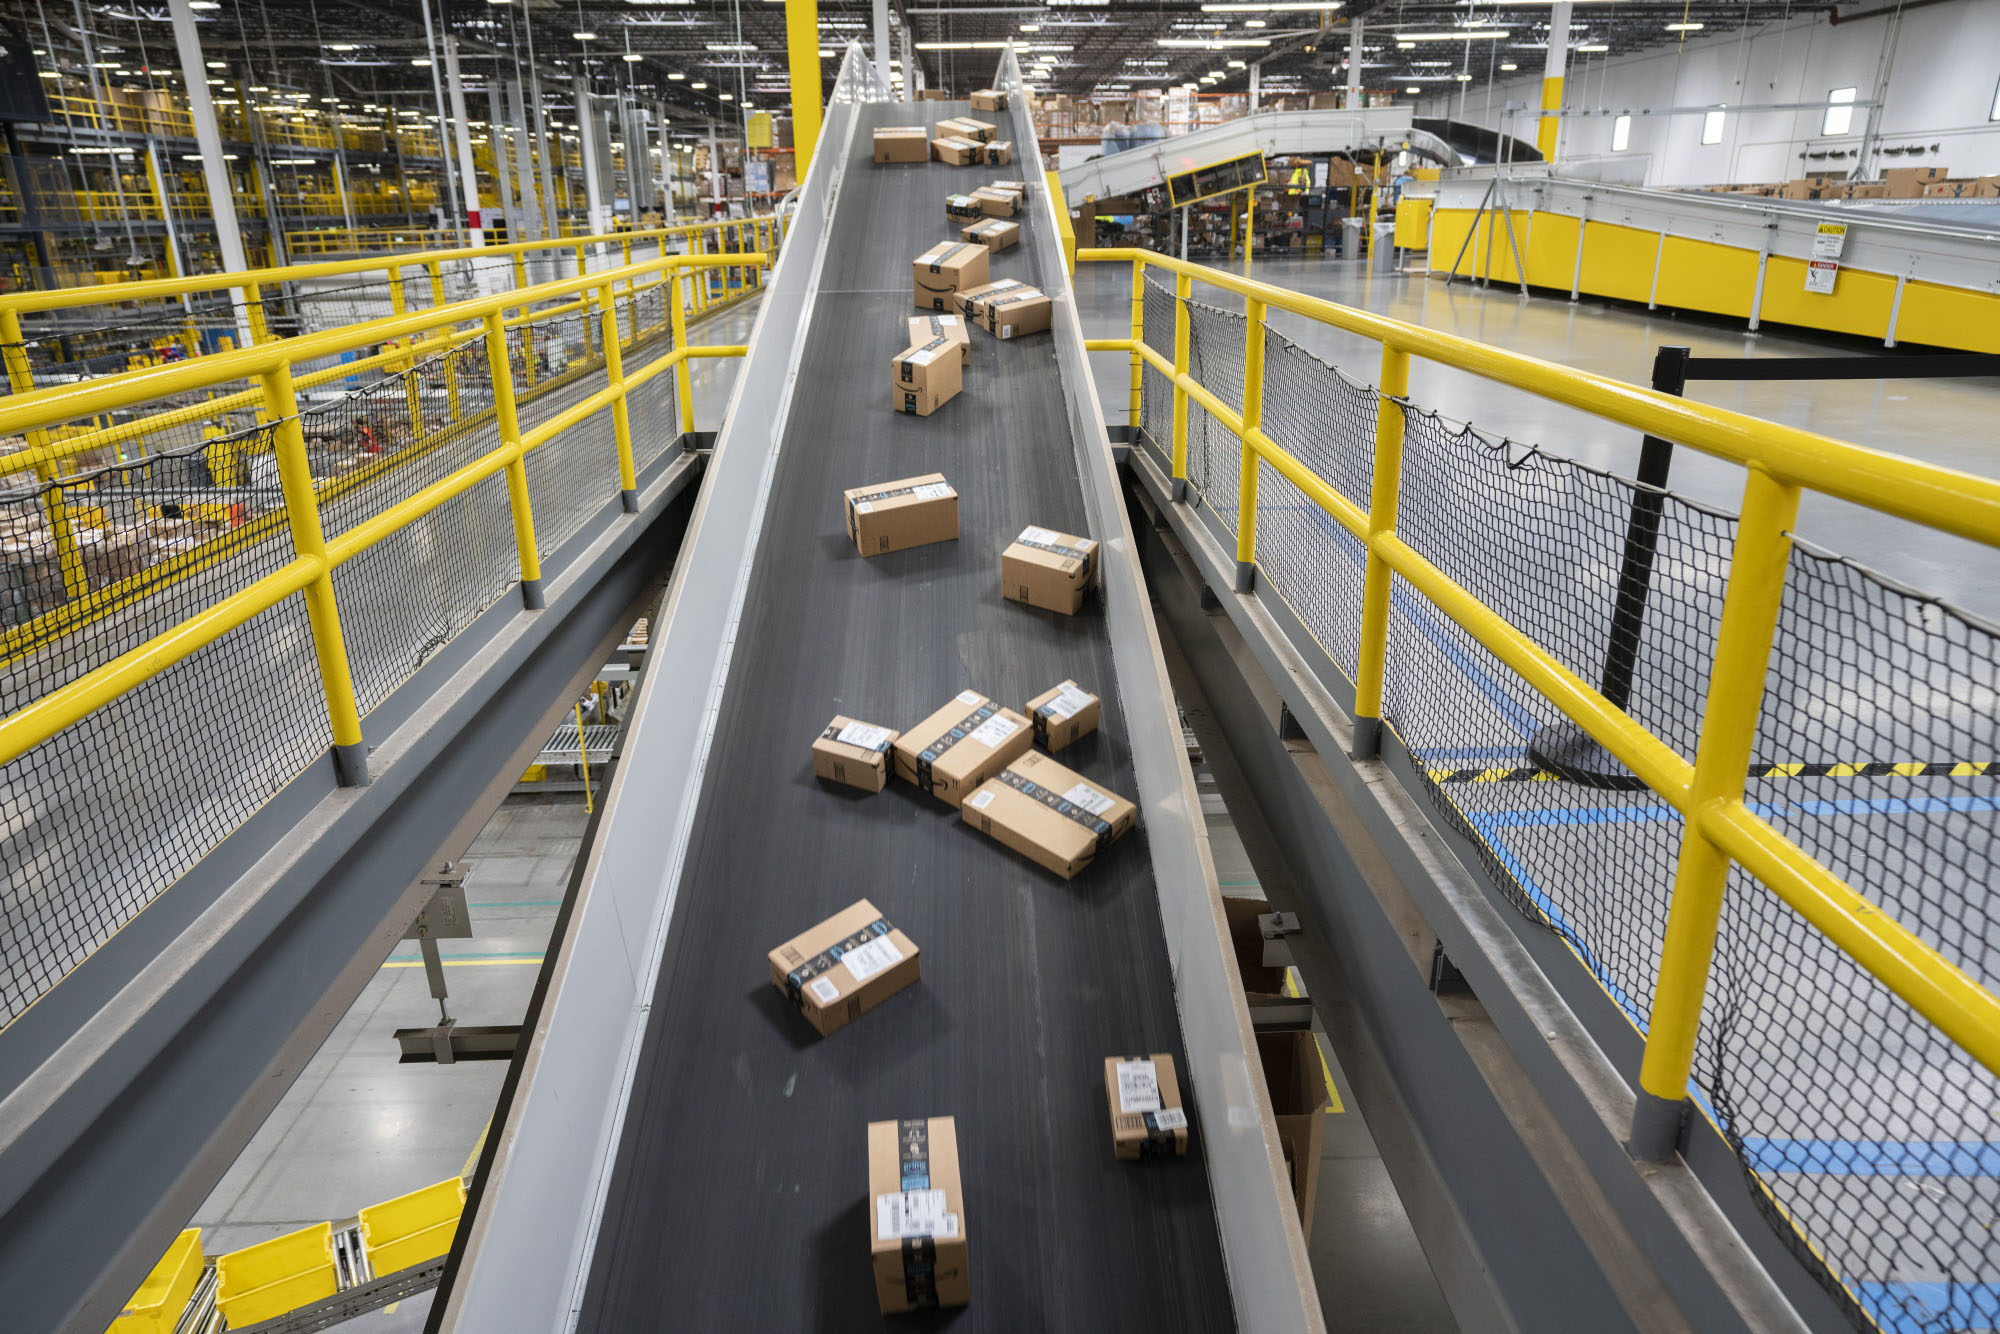 Packages are sorted at an Amazon.com Inc. fulfillment center in Baltimore. | BLOOMBERG